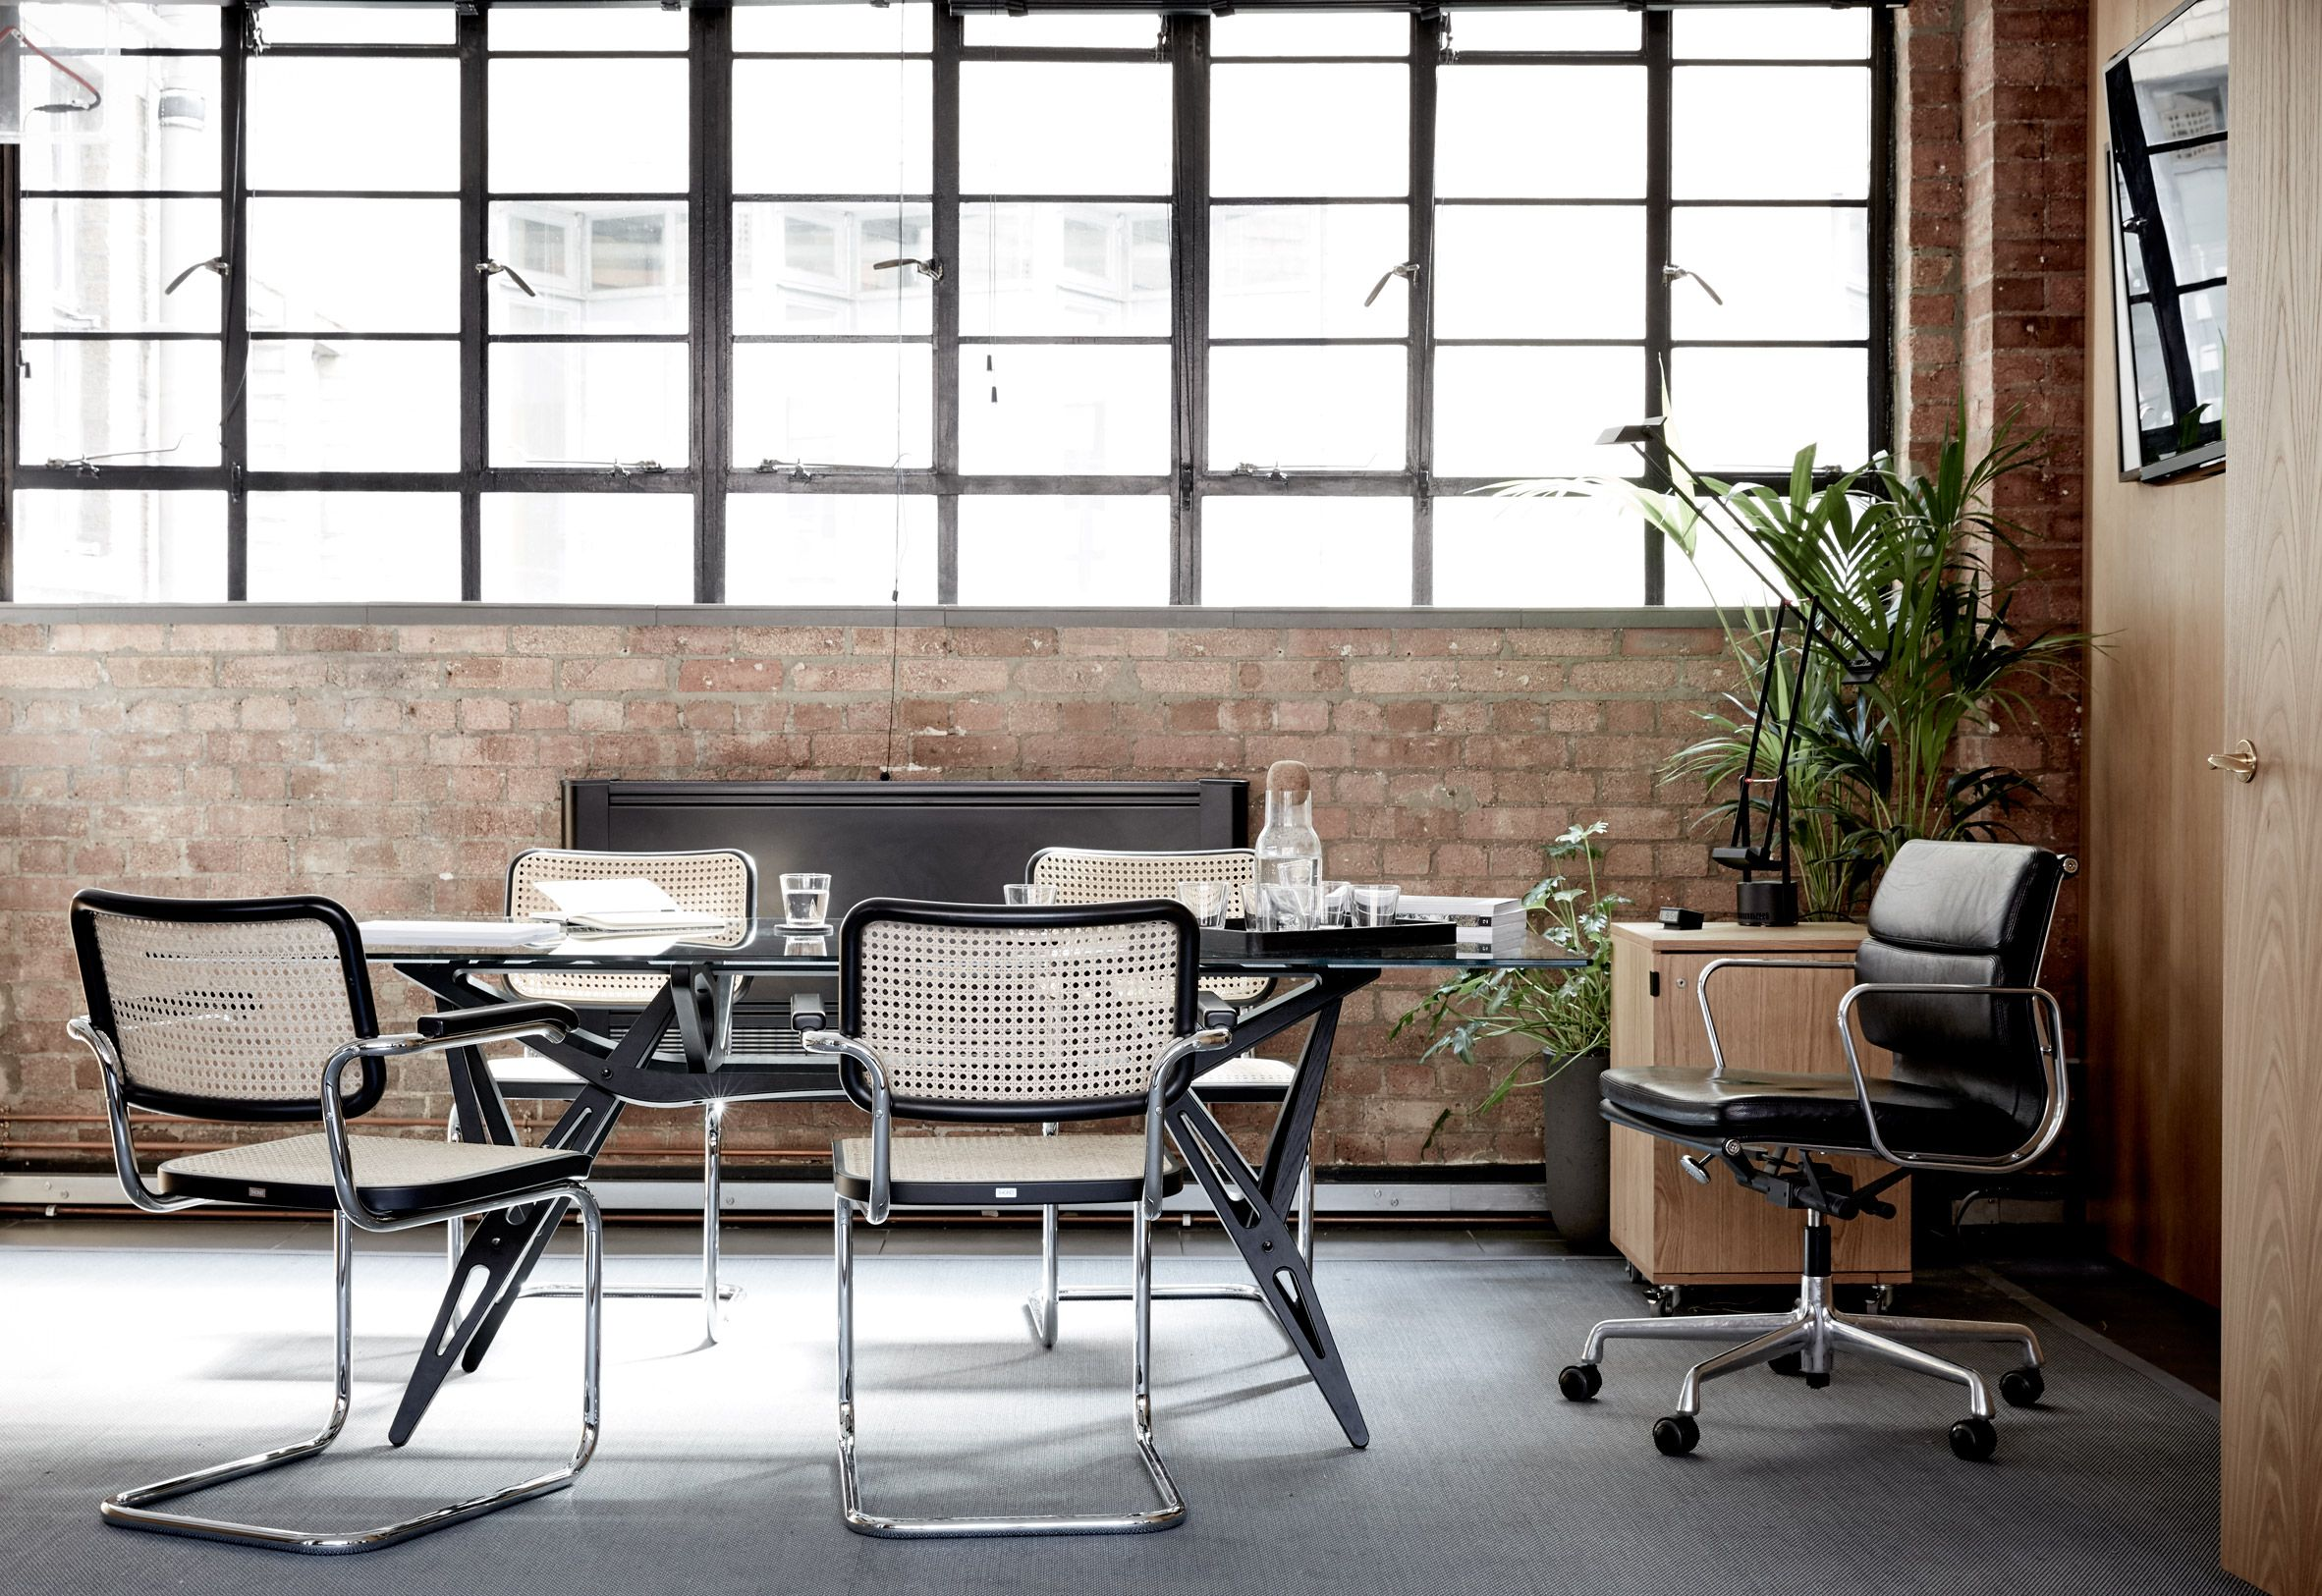 Four23 Studio S Self Designed Office Inside Former Metal Workshop Is Inspired By A Toolbox Industrial Style Office Office Interior Design Office Interiors